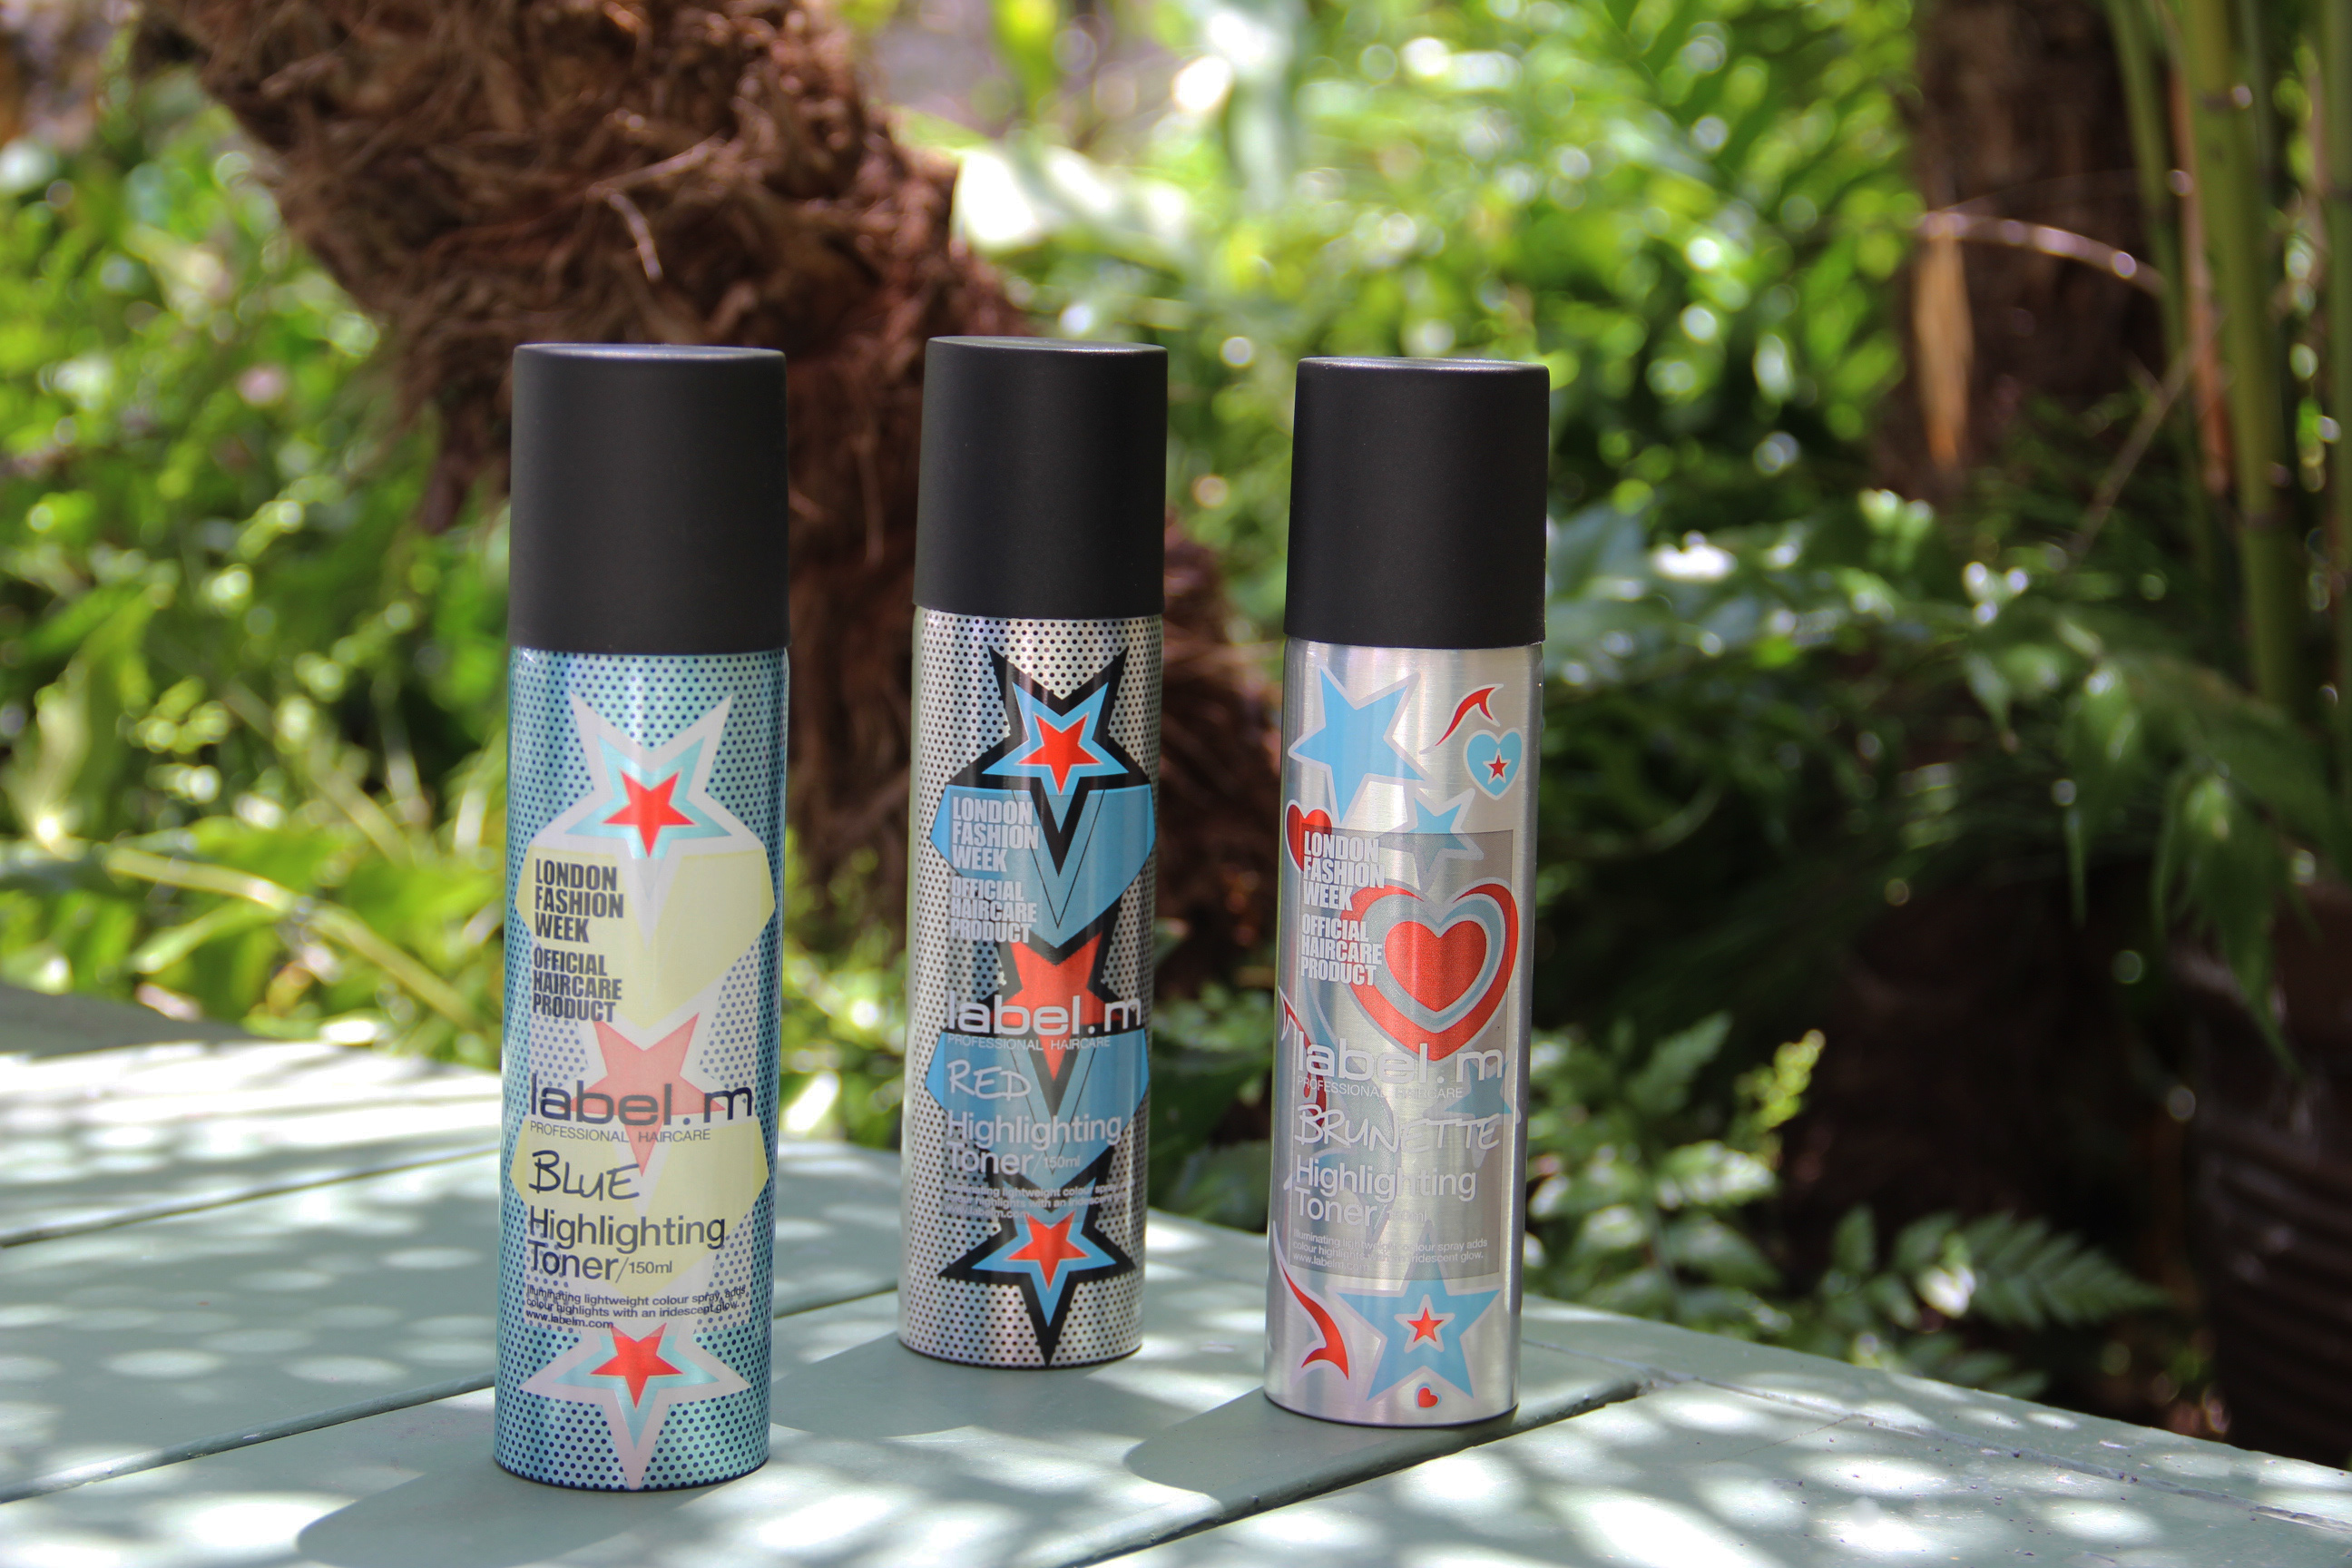 Hair Spotlight Label M S Must Haves For The Summer Ladove